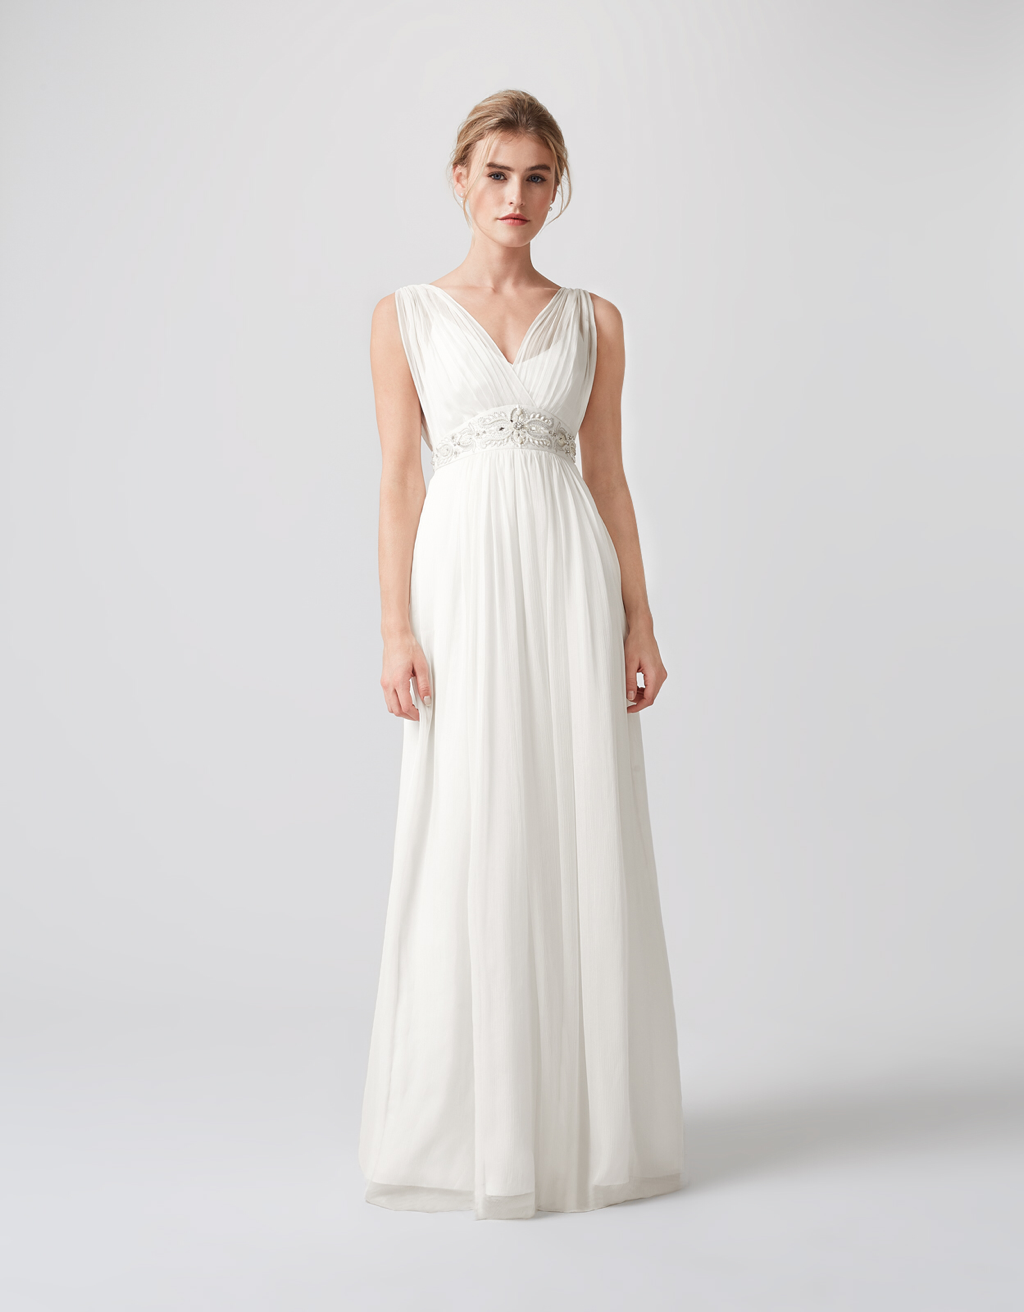 3765282a63a Budget Grecian Wedding Dress - SaveOnTheDate